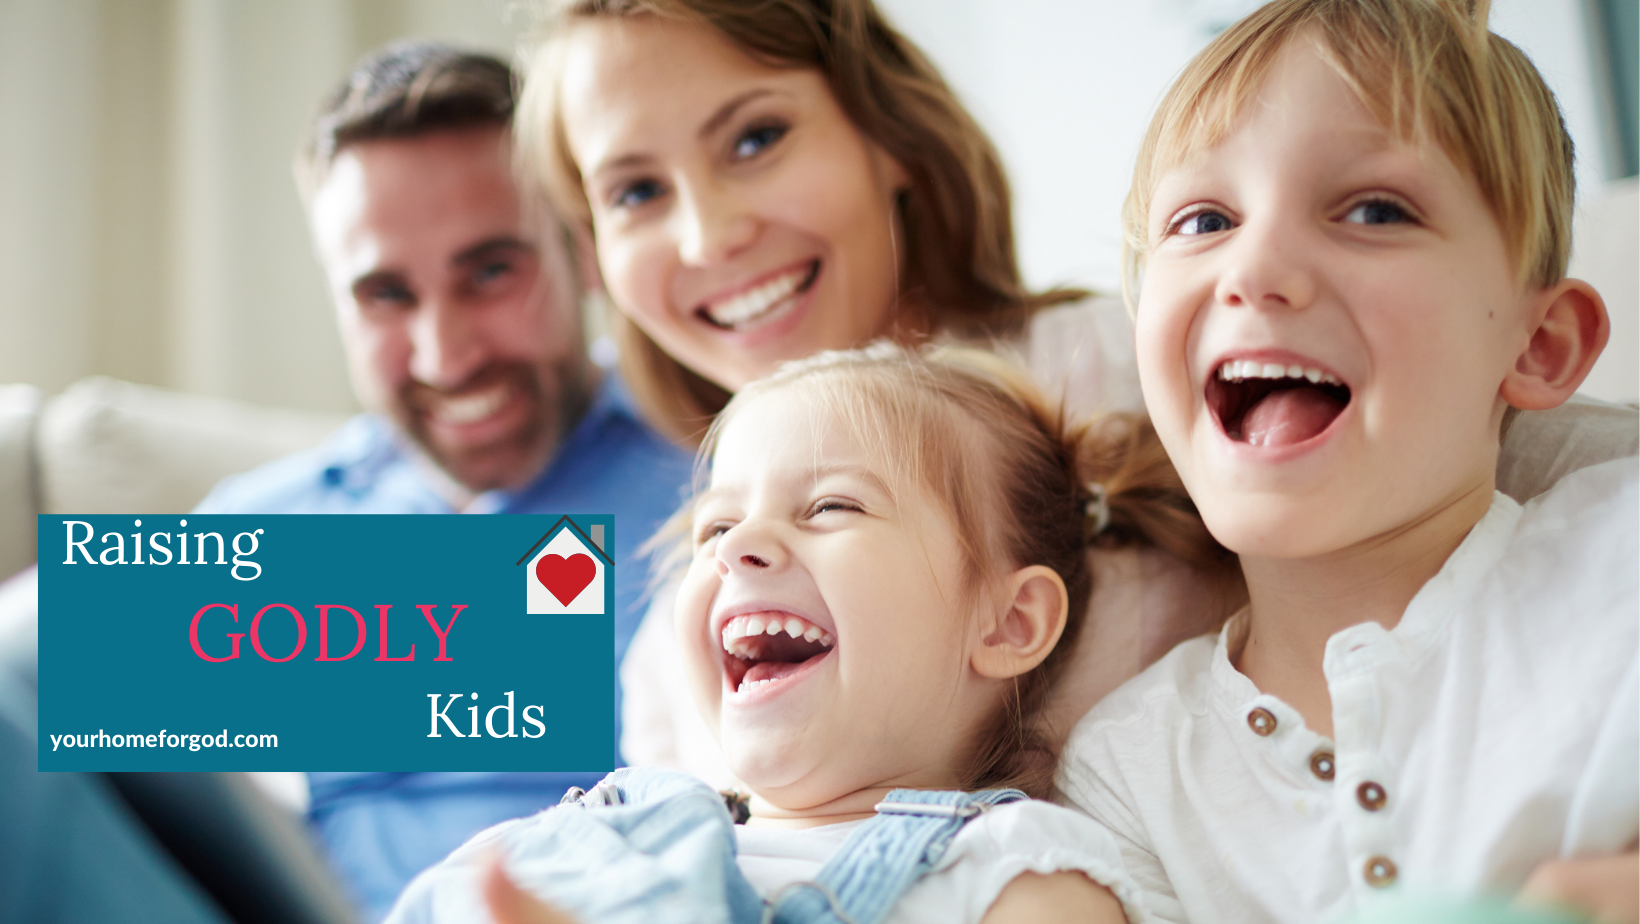 Your Home For God, raising-godly-kids-course